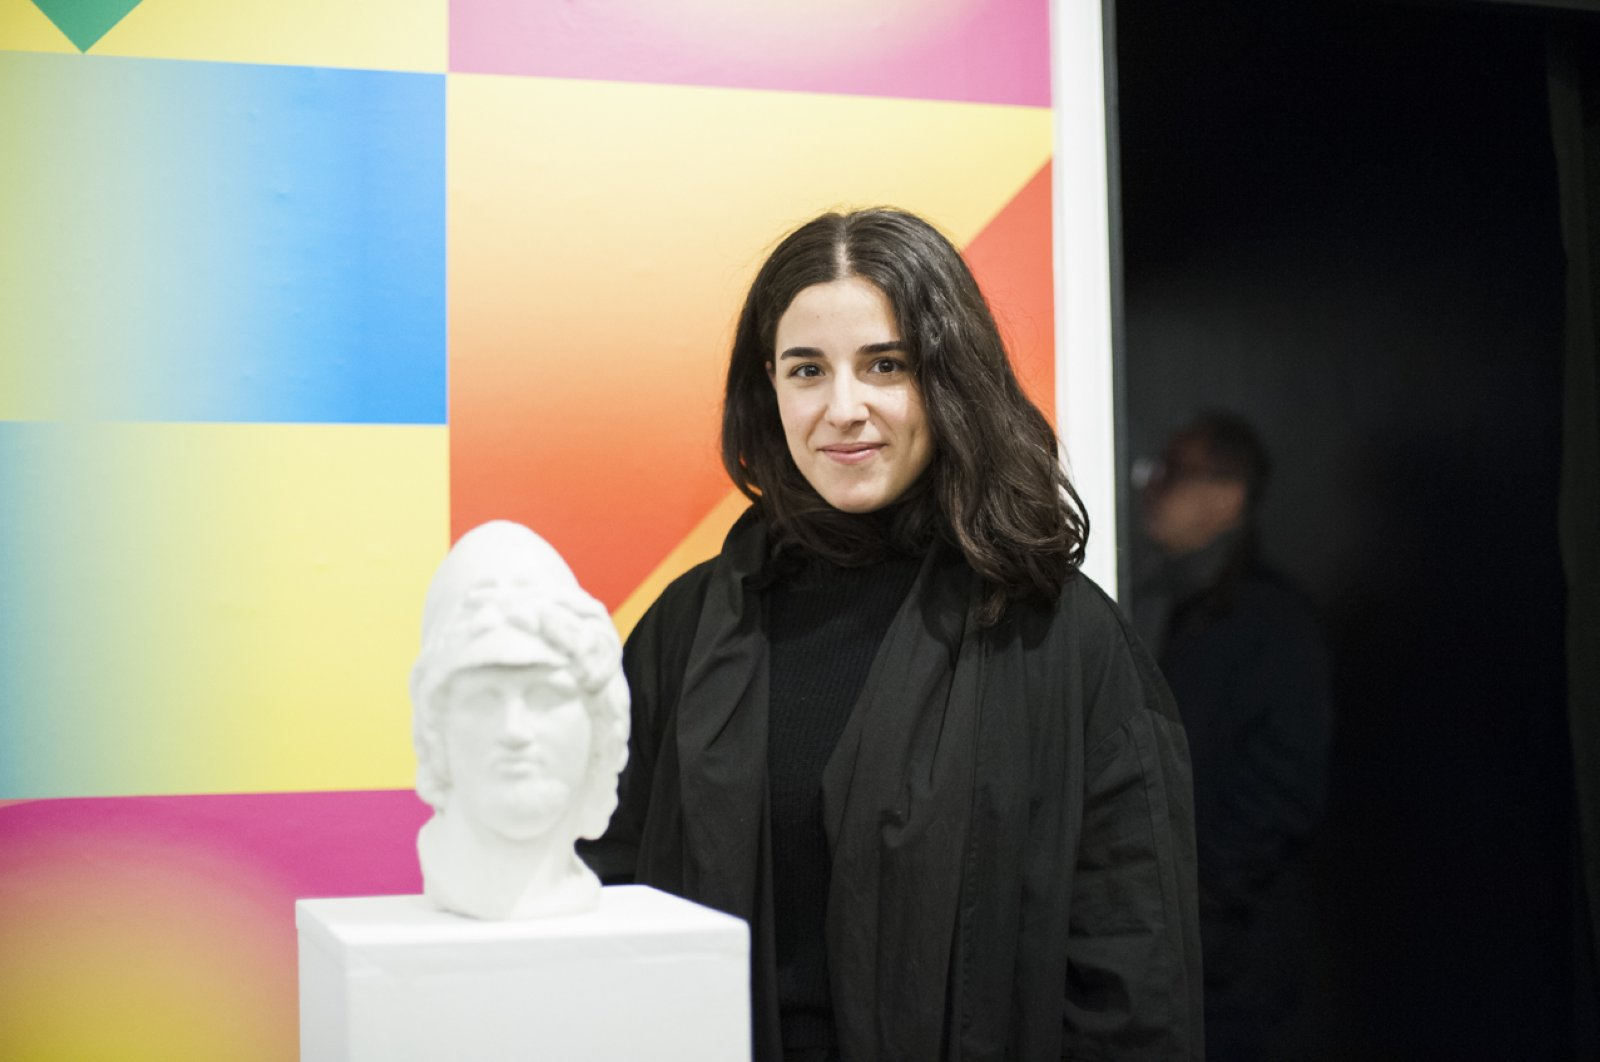 Turkish Artist Melds Historic Figures with 3D Printed Sandstone Sculpture